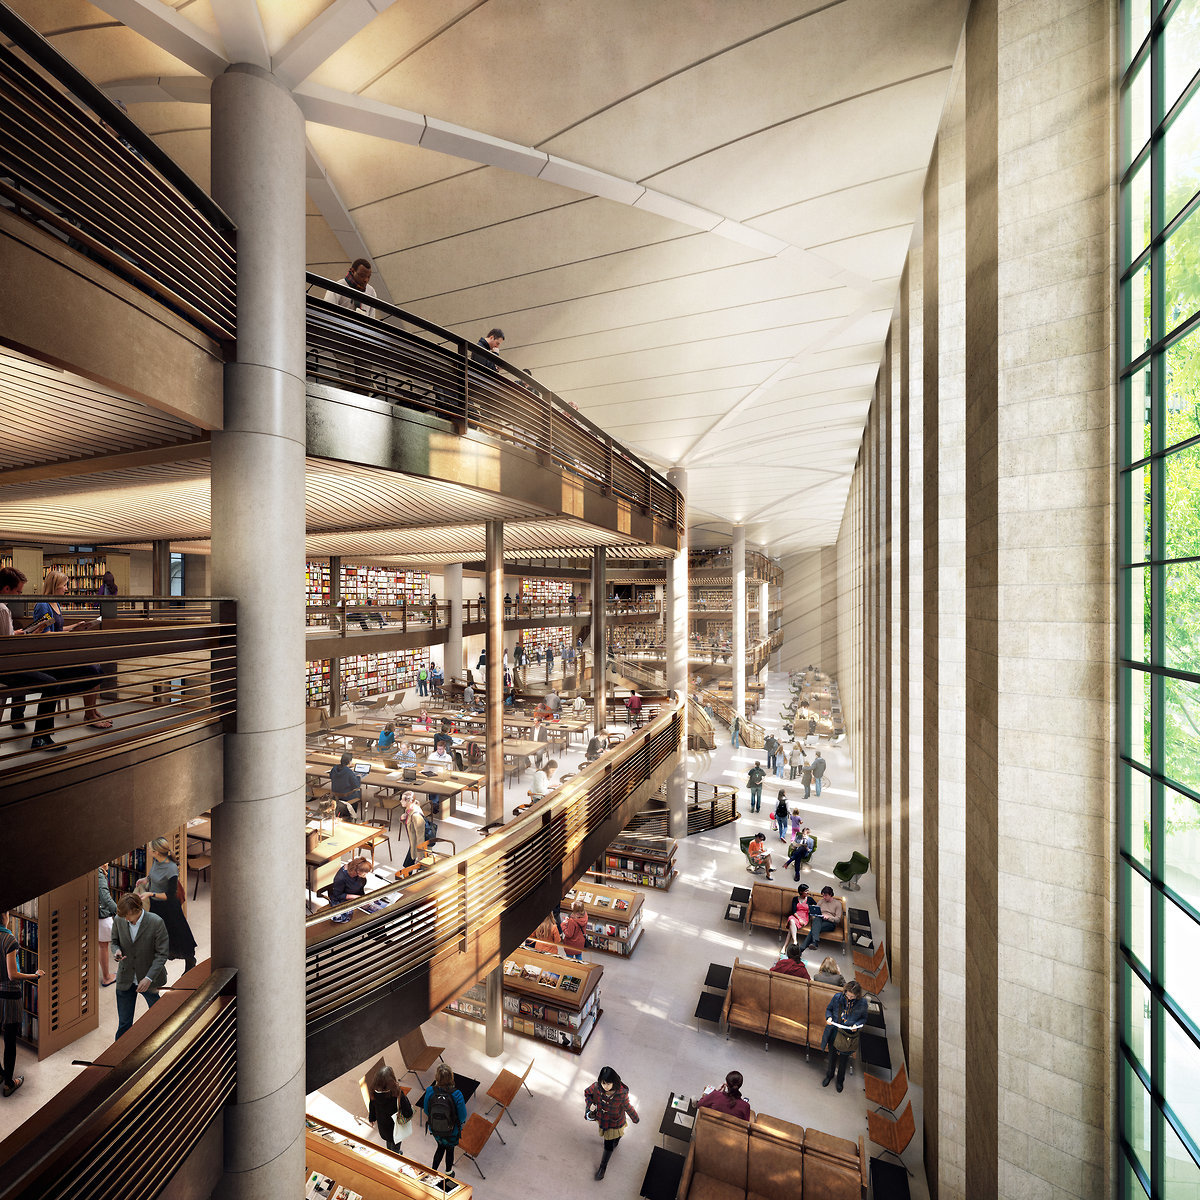 Source: New York Public Library/dbox/Foster + Partners